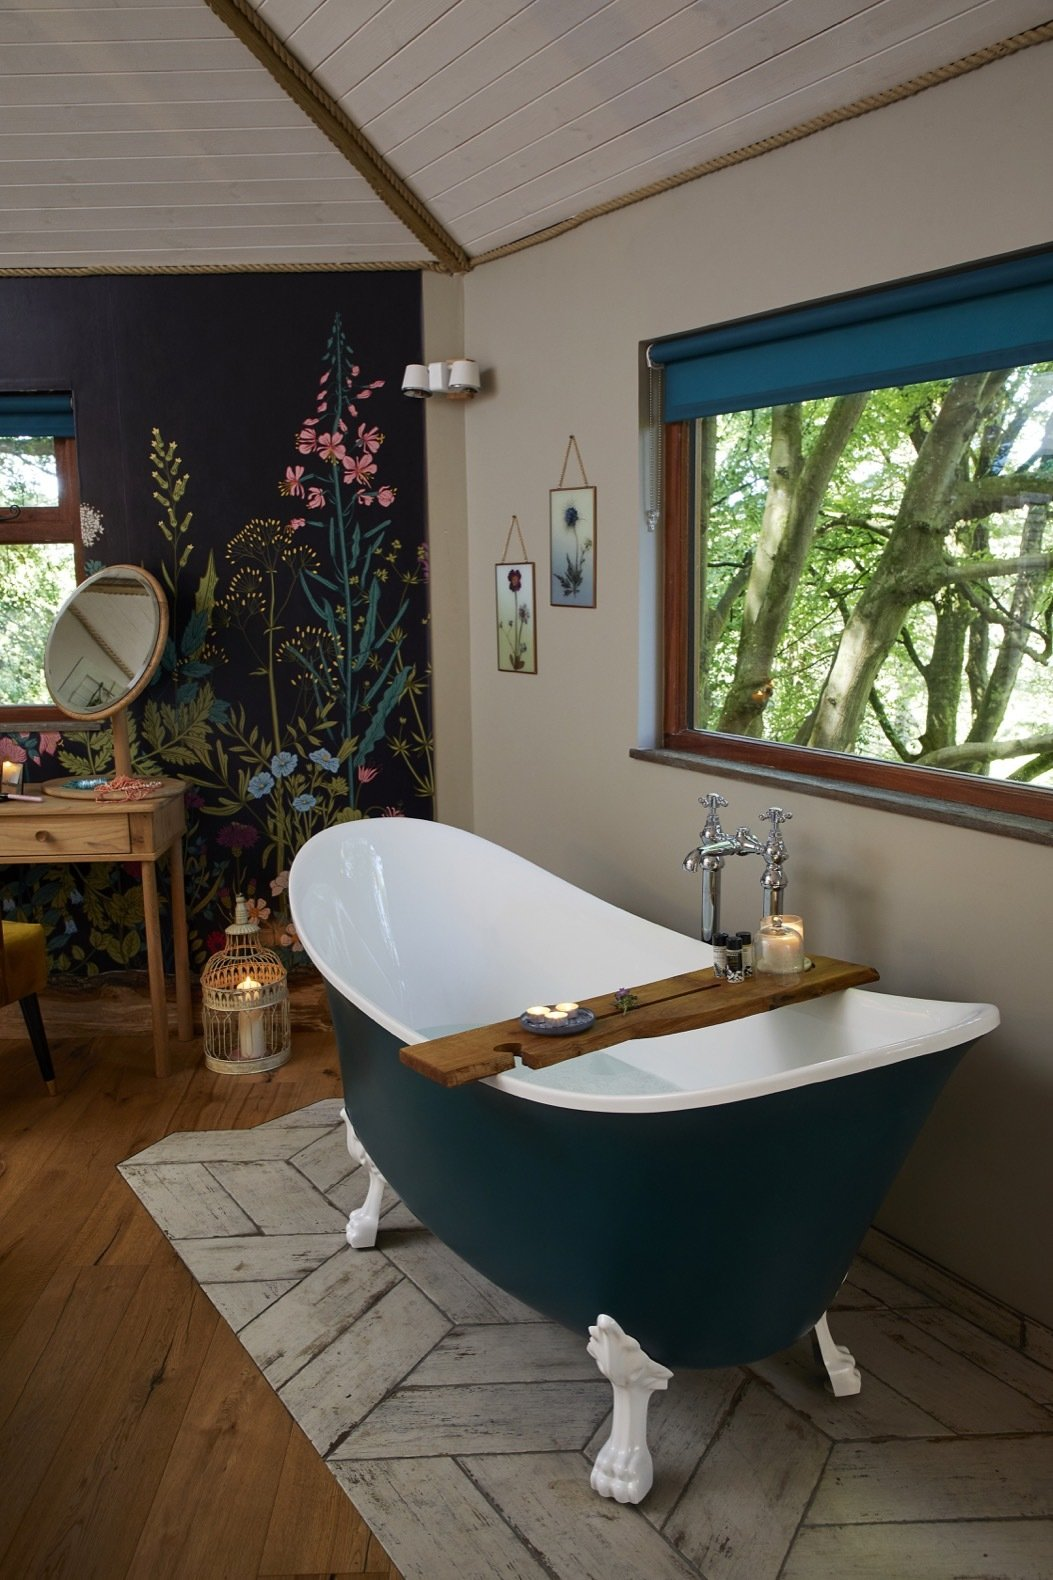 Bath Room, Wall Lighting, Medium Hardwood Floor, and Freestanding Tub The roll-top freestanding bath overlooks beautiful valley views.  Ravendere Retreats from A Luxe, Handcrafted Tree House Offers Blissful Escape Into Nature